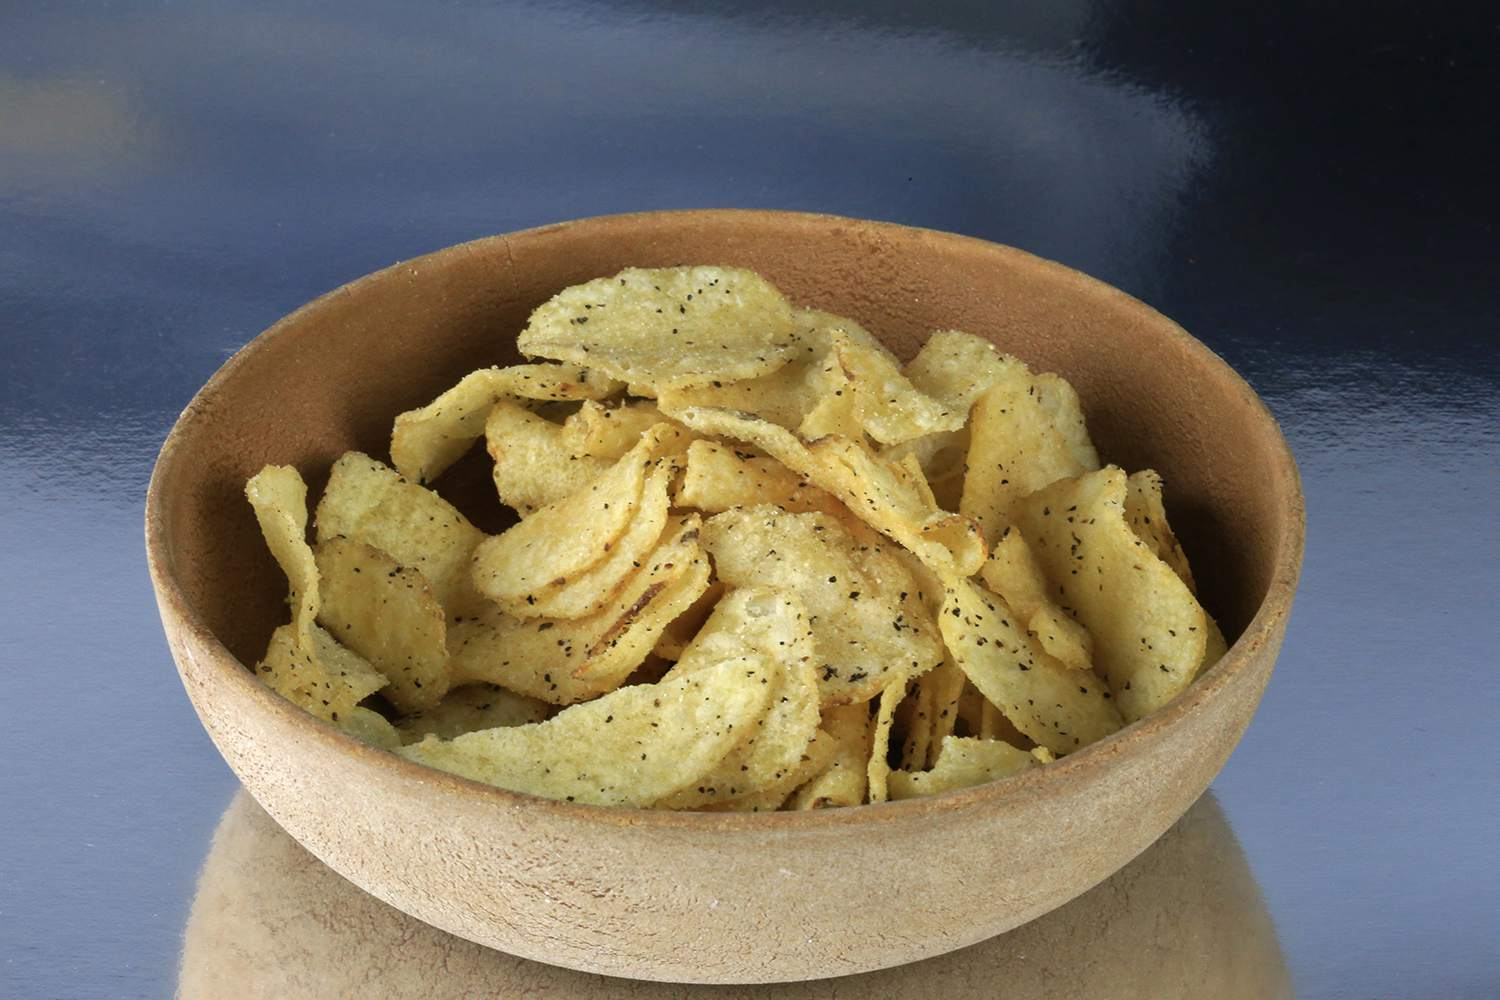 Snack food factory tours in Lancaster County